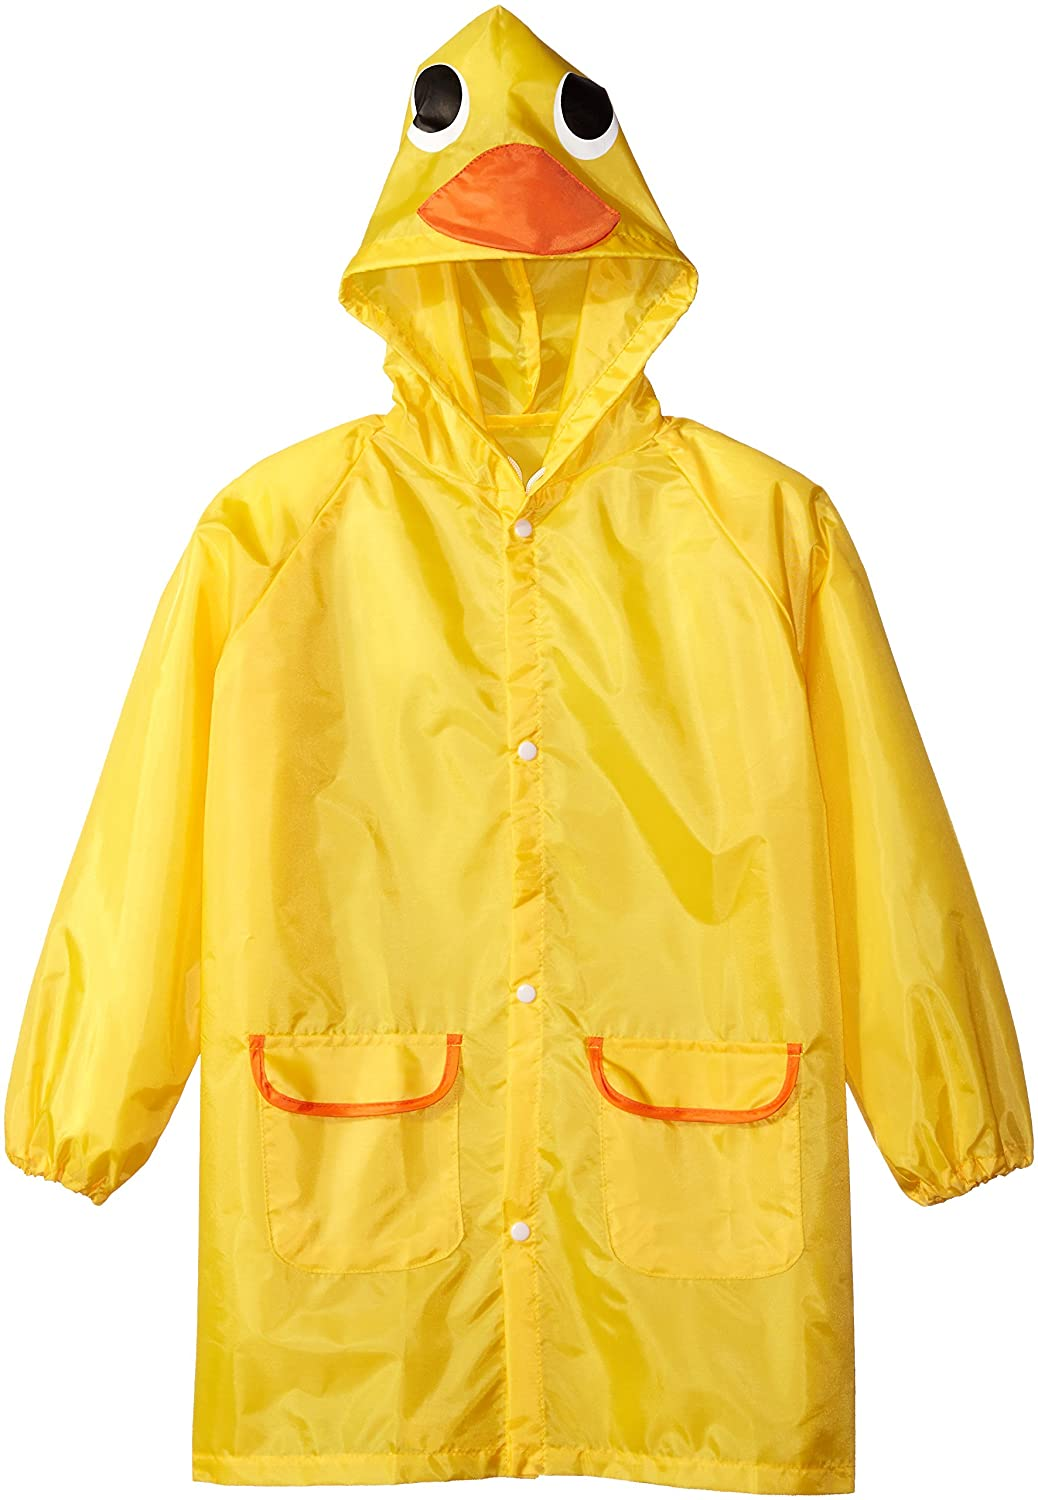 Children's Raincoat Duck,Ages 3-10 Children's Raincoat Duck CloudNine Umbrellas CP-K5 DUCK